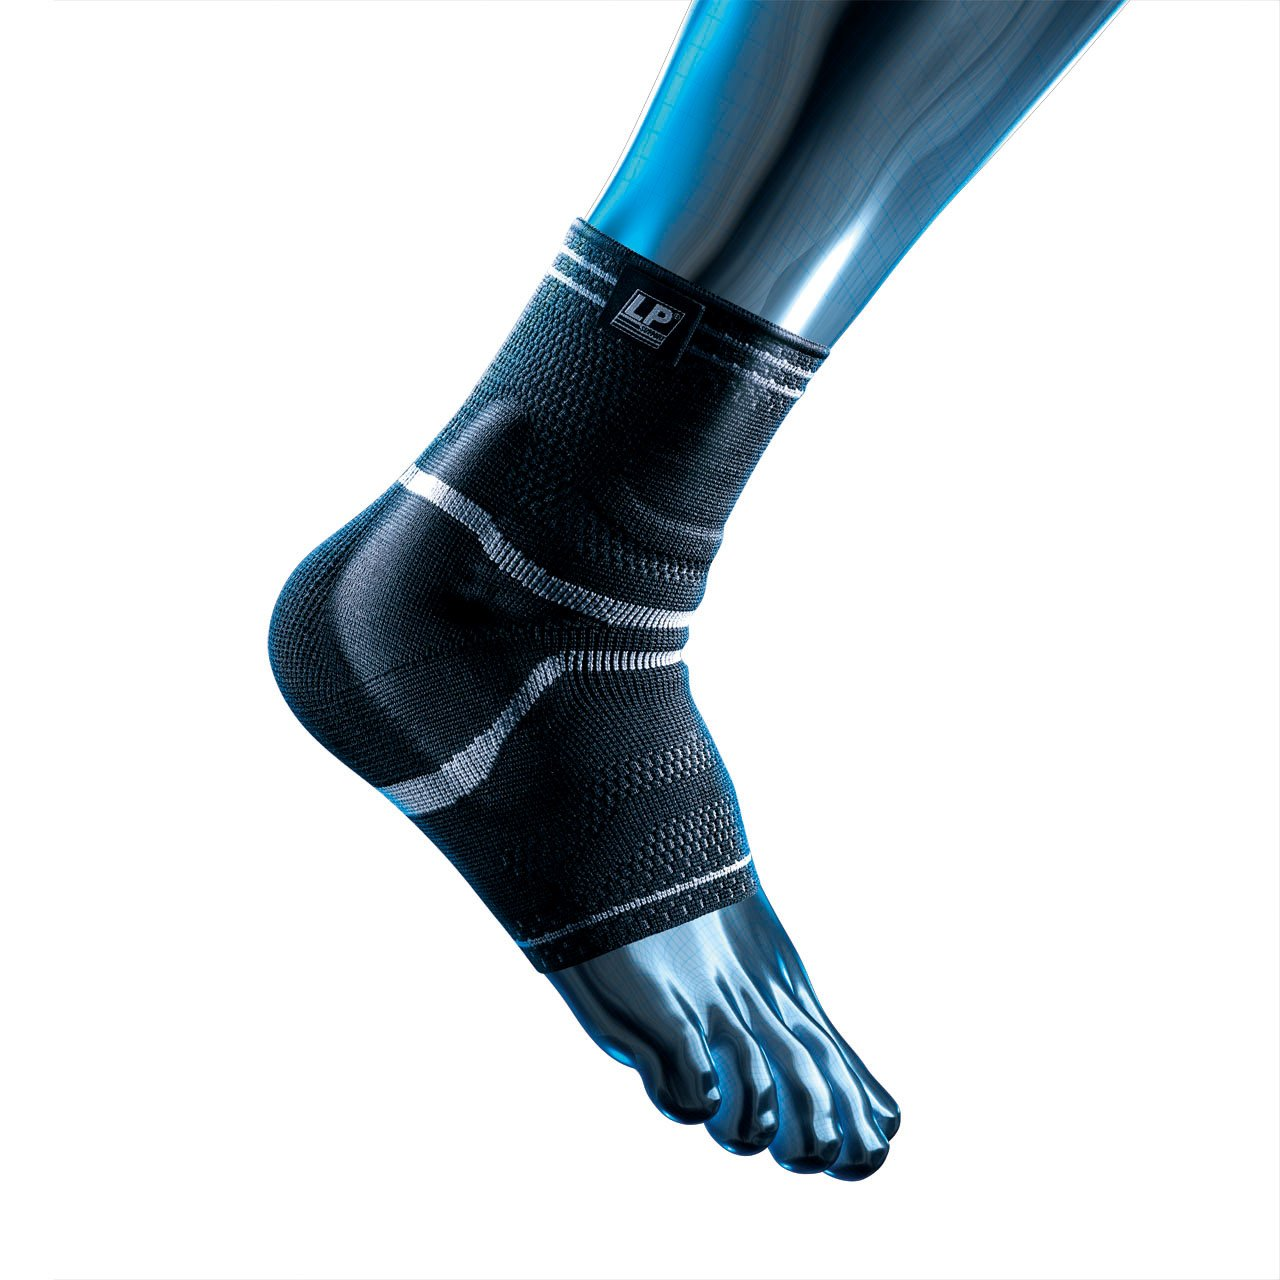 LP X-TREMUS Pro-Athlete Ankle Support - for injury prevention & support, X-Large